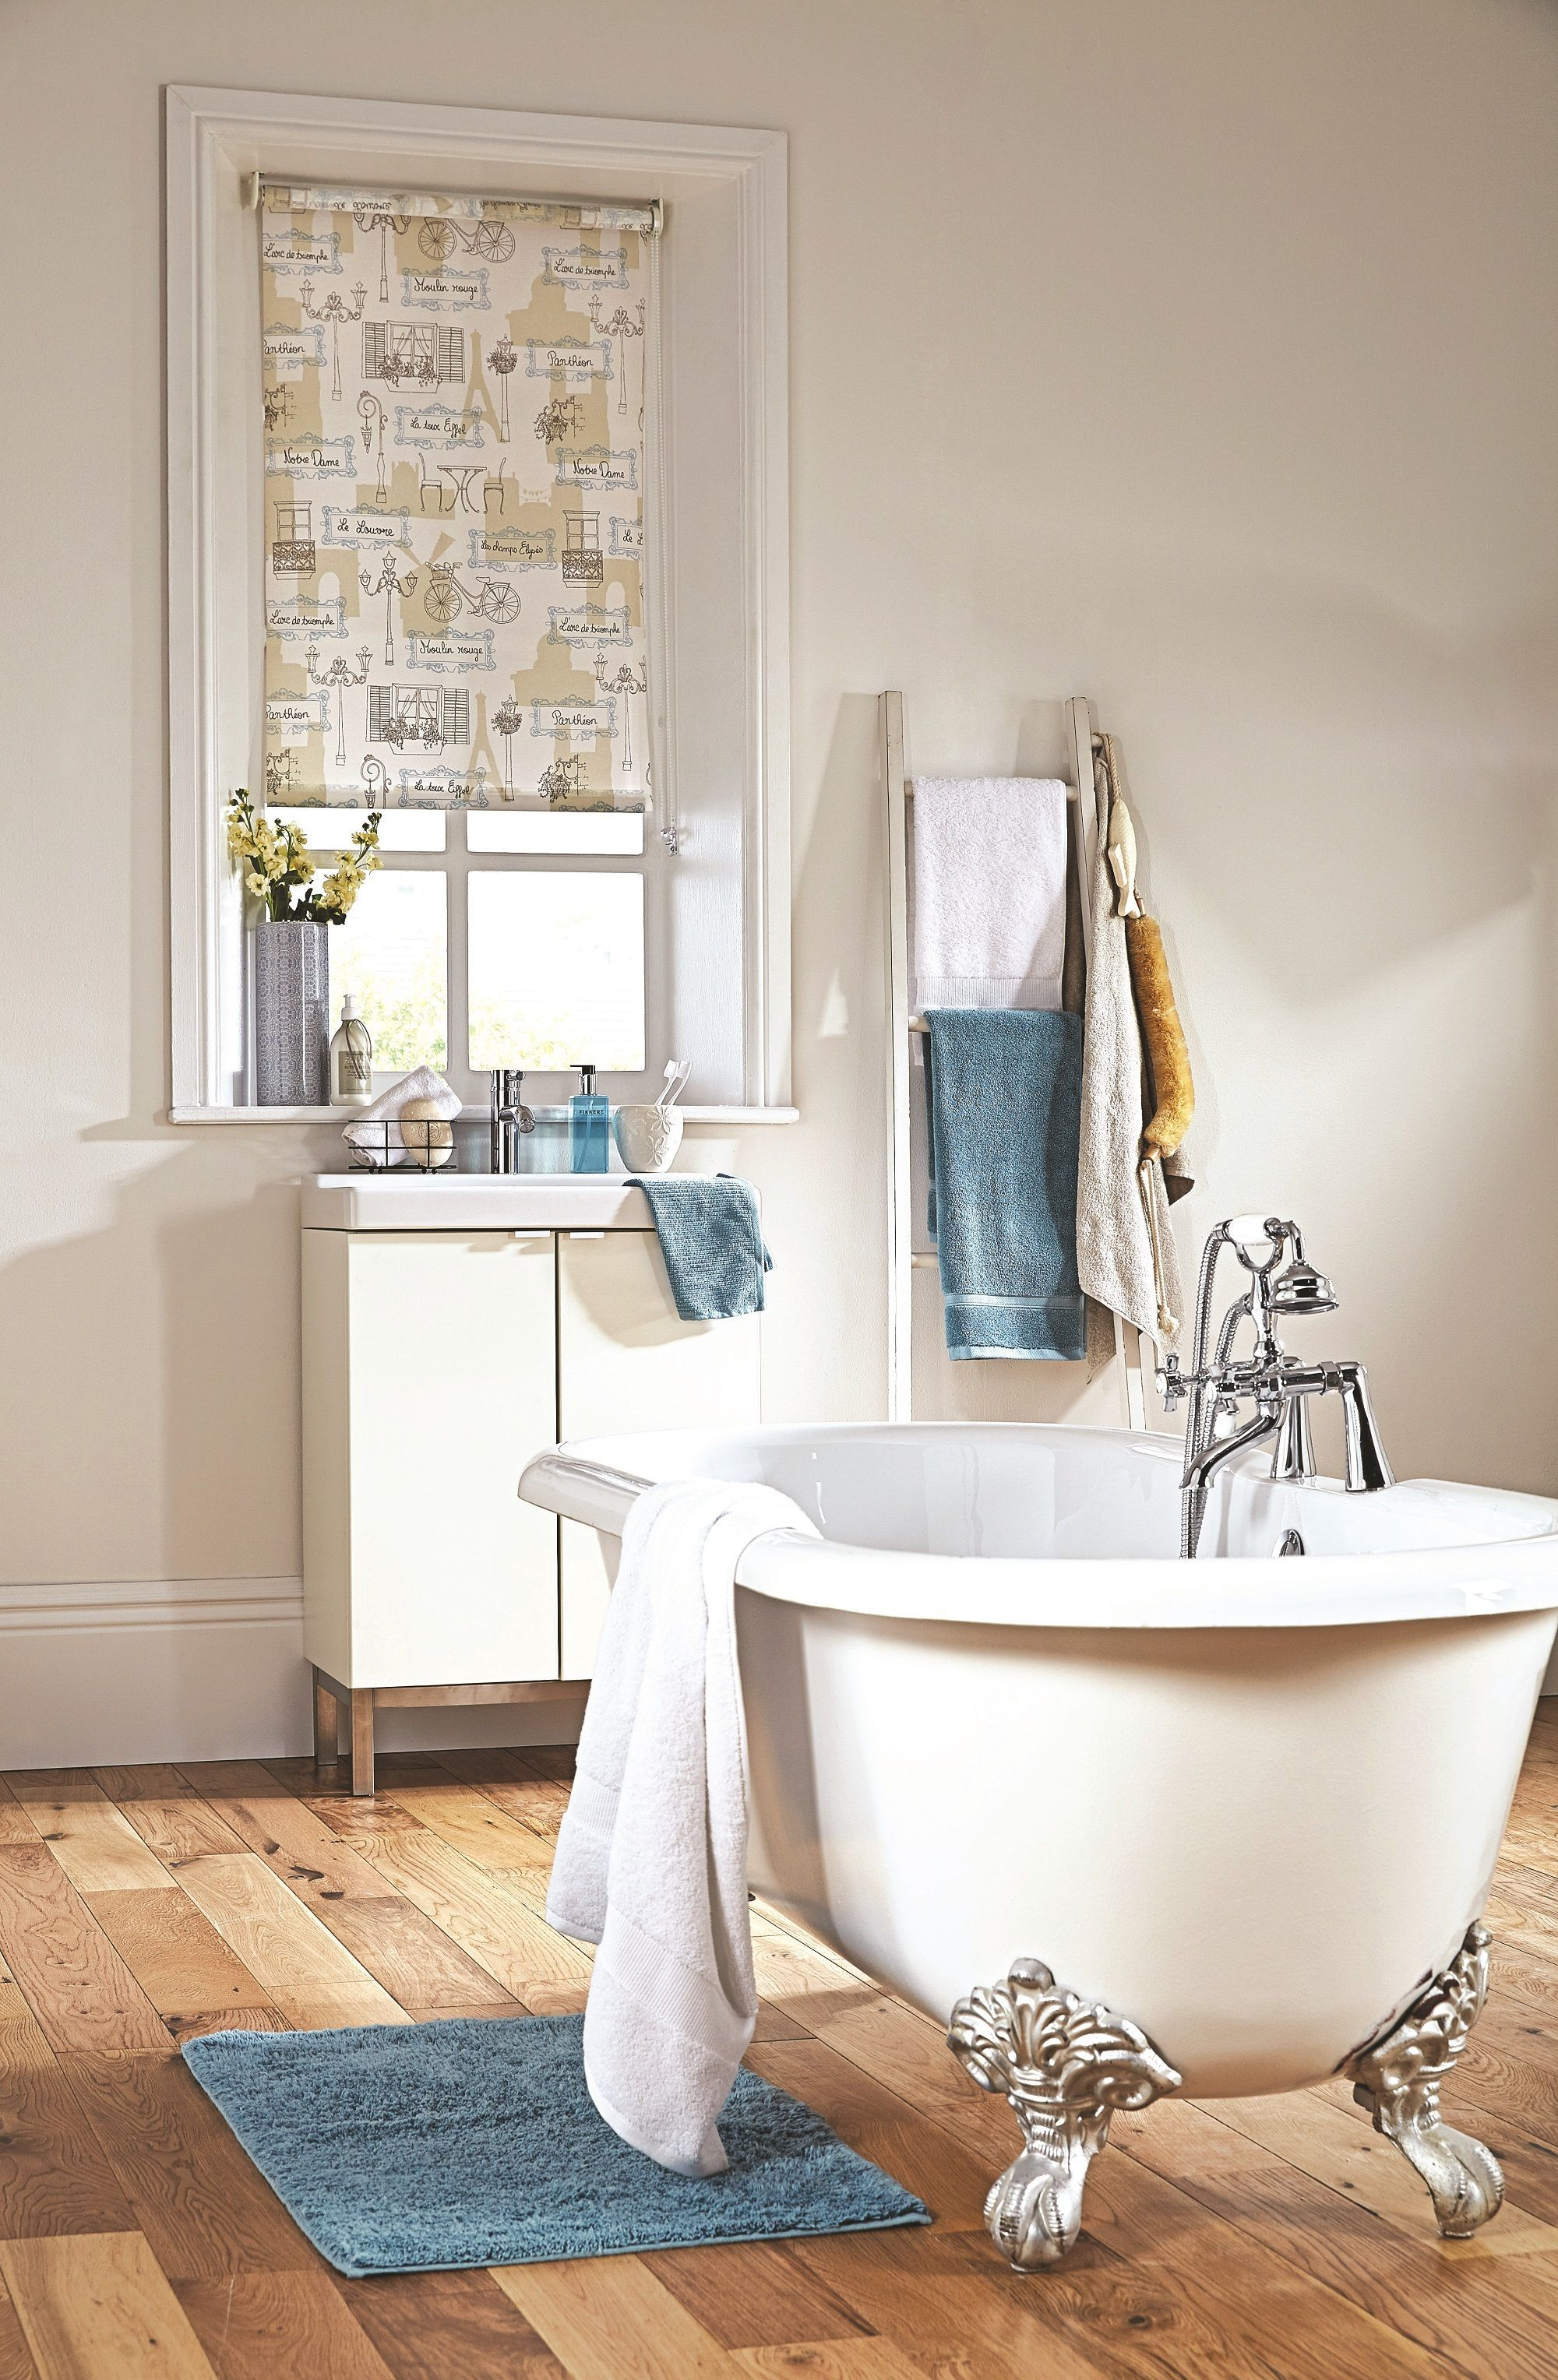 Notre Dame Roller Blinds From Apollo Patterned Neutral Bathroom Contemporary Inspiration